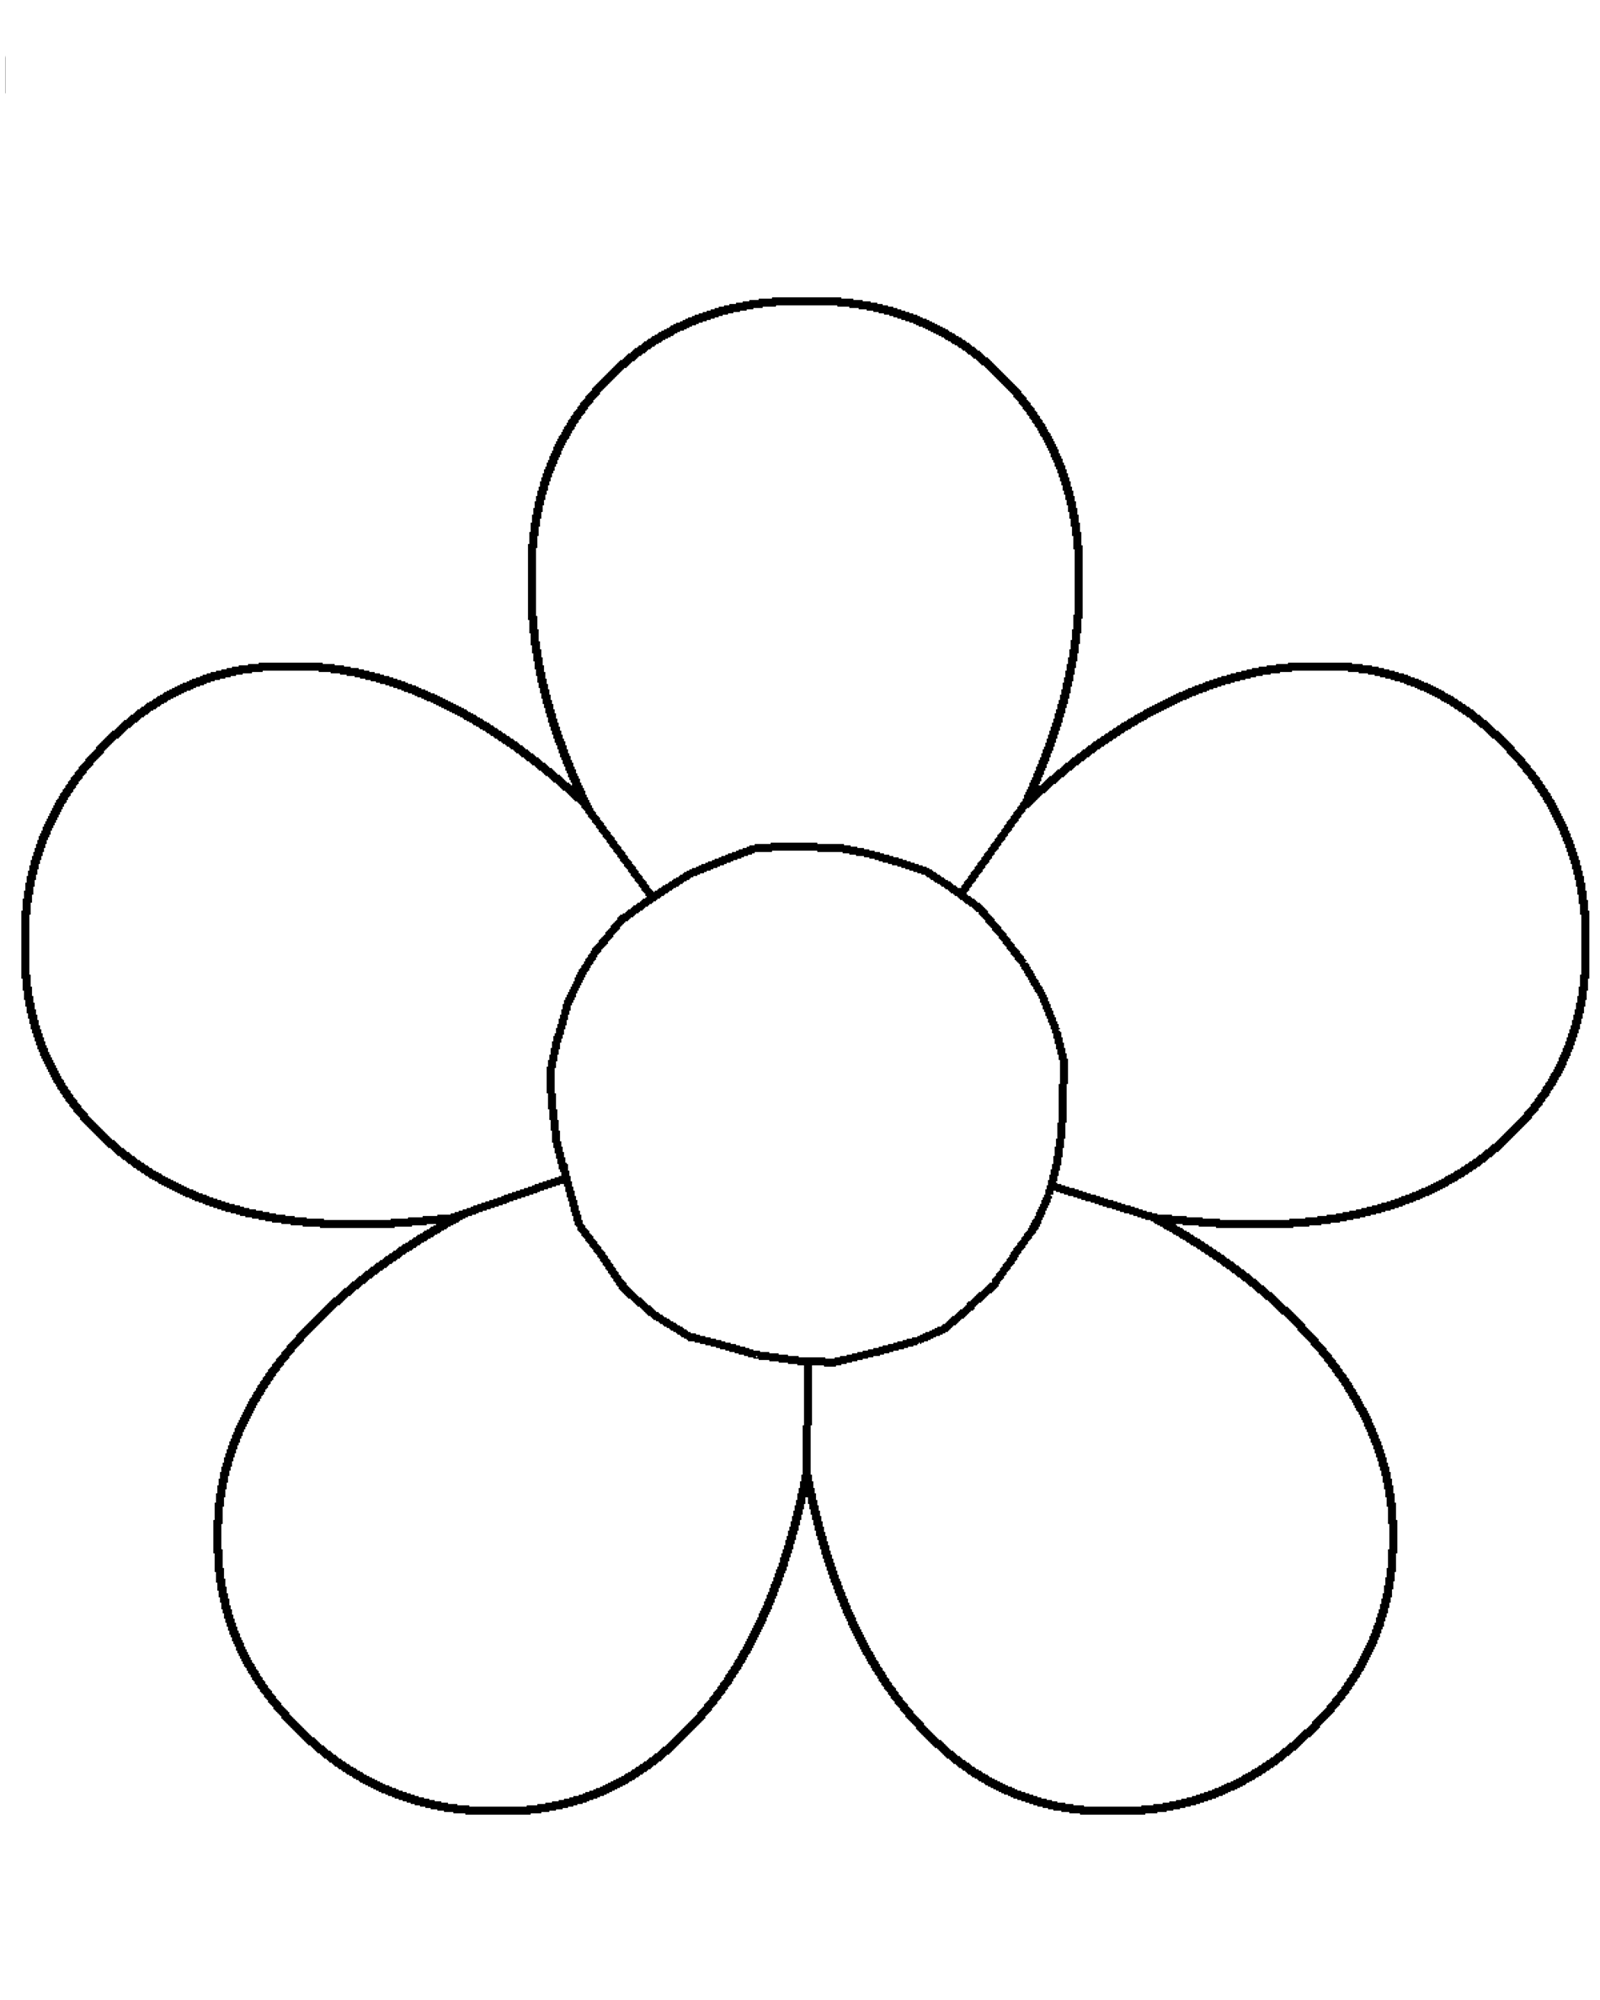 outline pictures flowers coloring pages for kids | Flower Template for Children's Activities | Flower template, Flower coloring pages, Printable ...